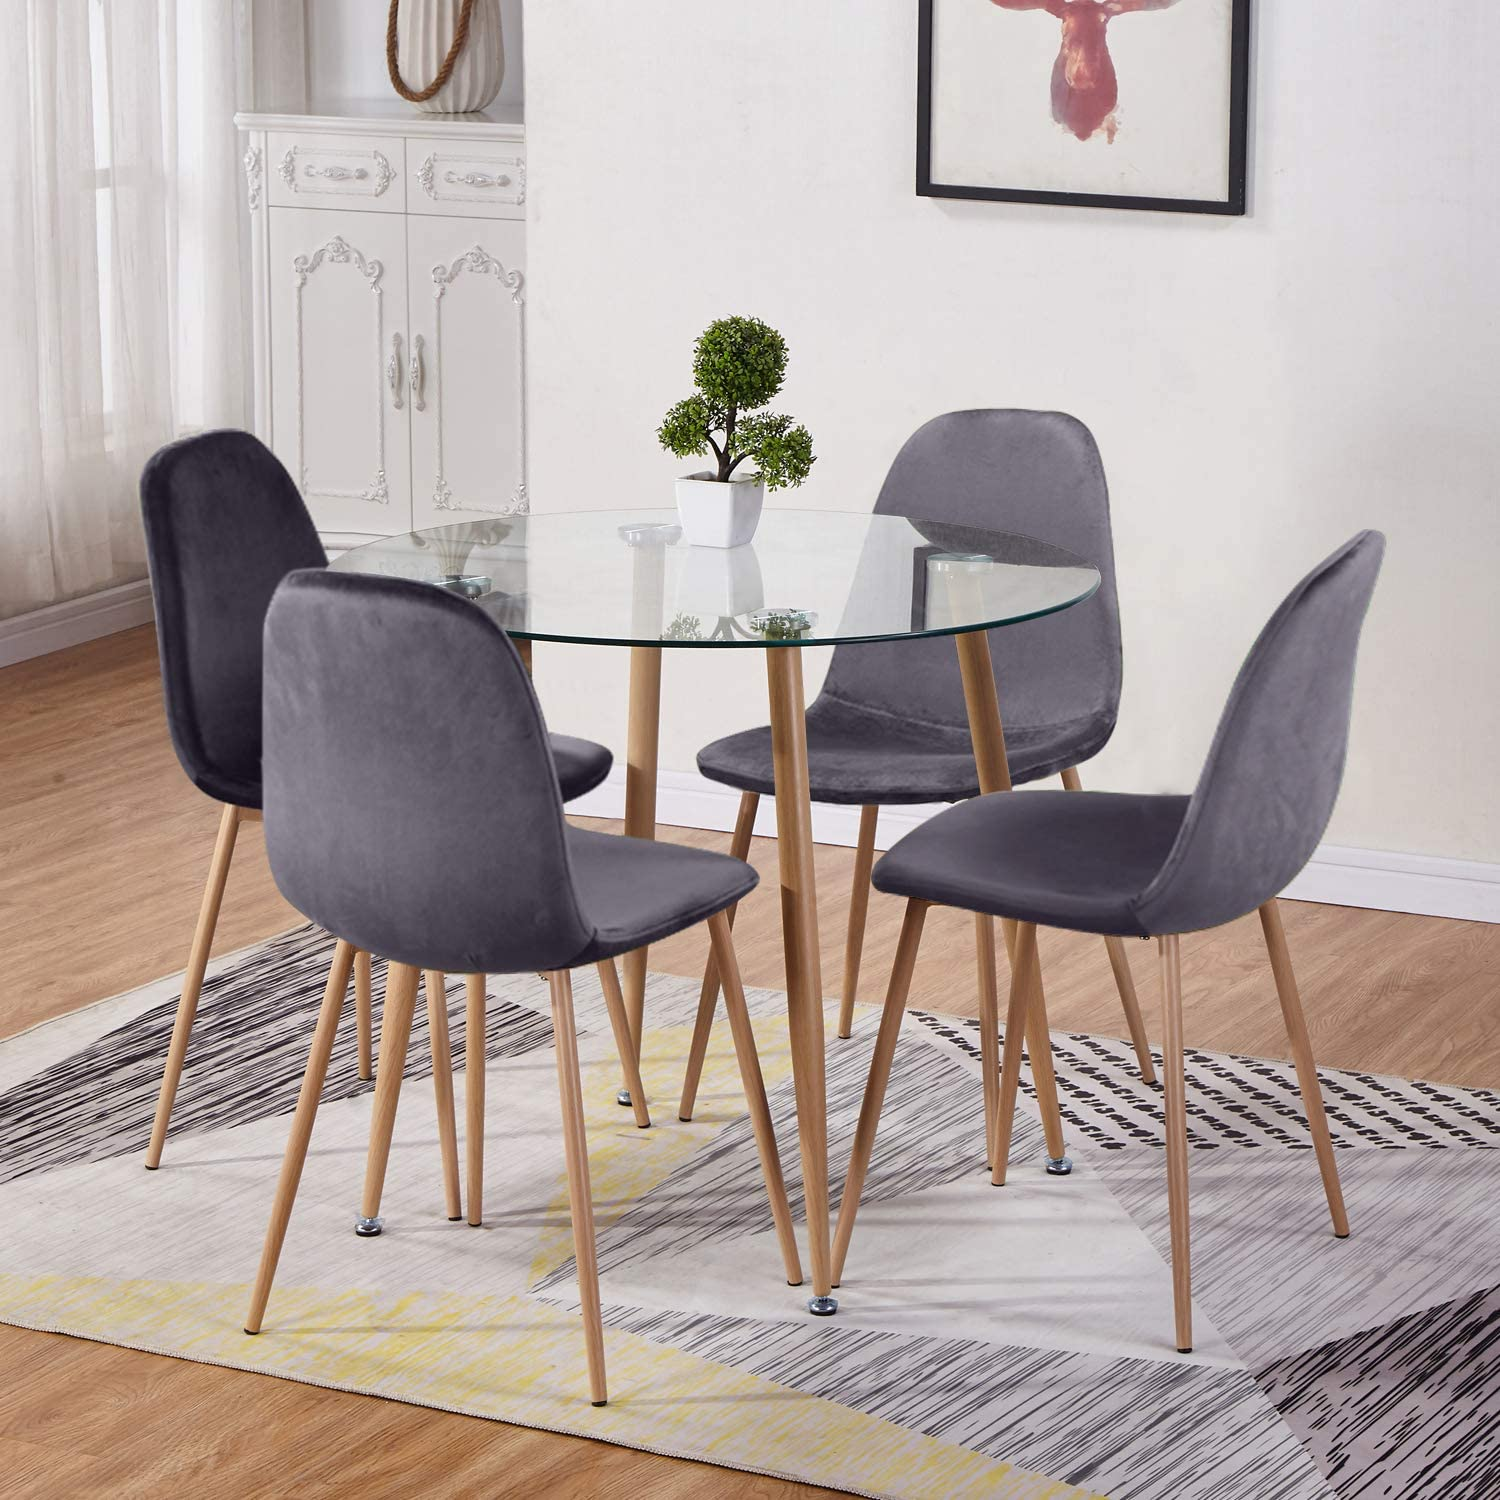 Goldfan Round Glass Dining Table And 4 Chairs Kitchen Dining Table And Grey Fabric Velvet Chairs With Metal Legs Dining Room Set Amazon Co Uk Kitchen Home